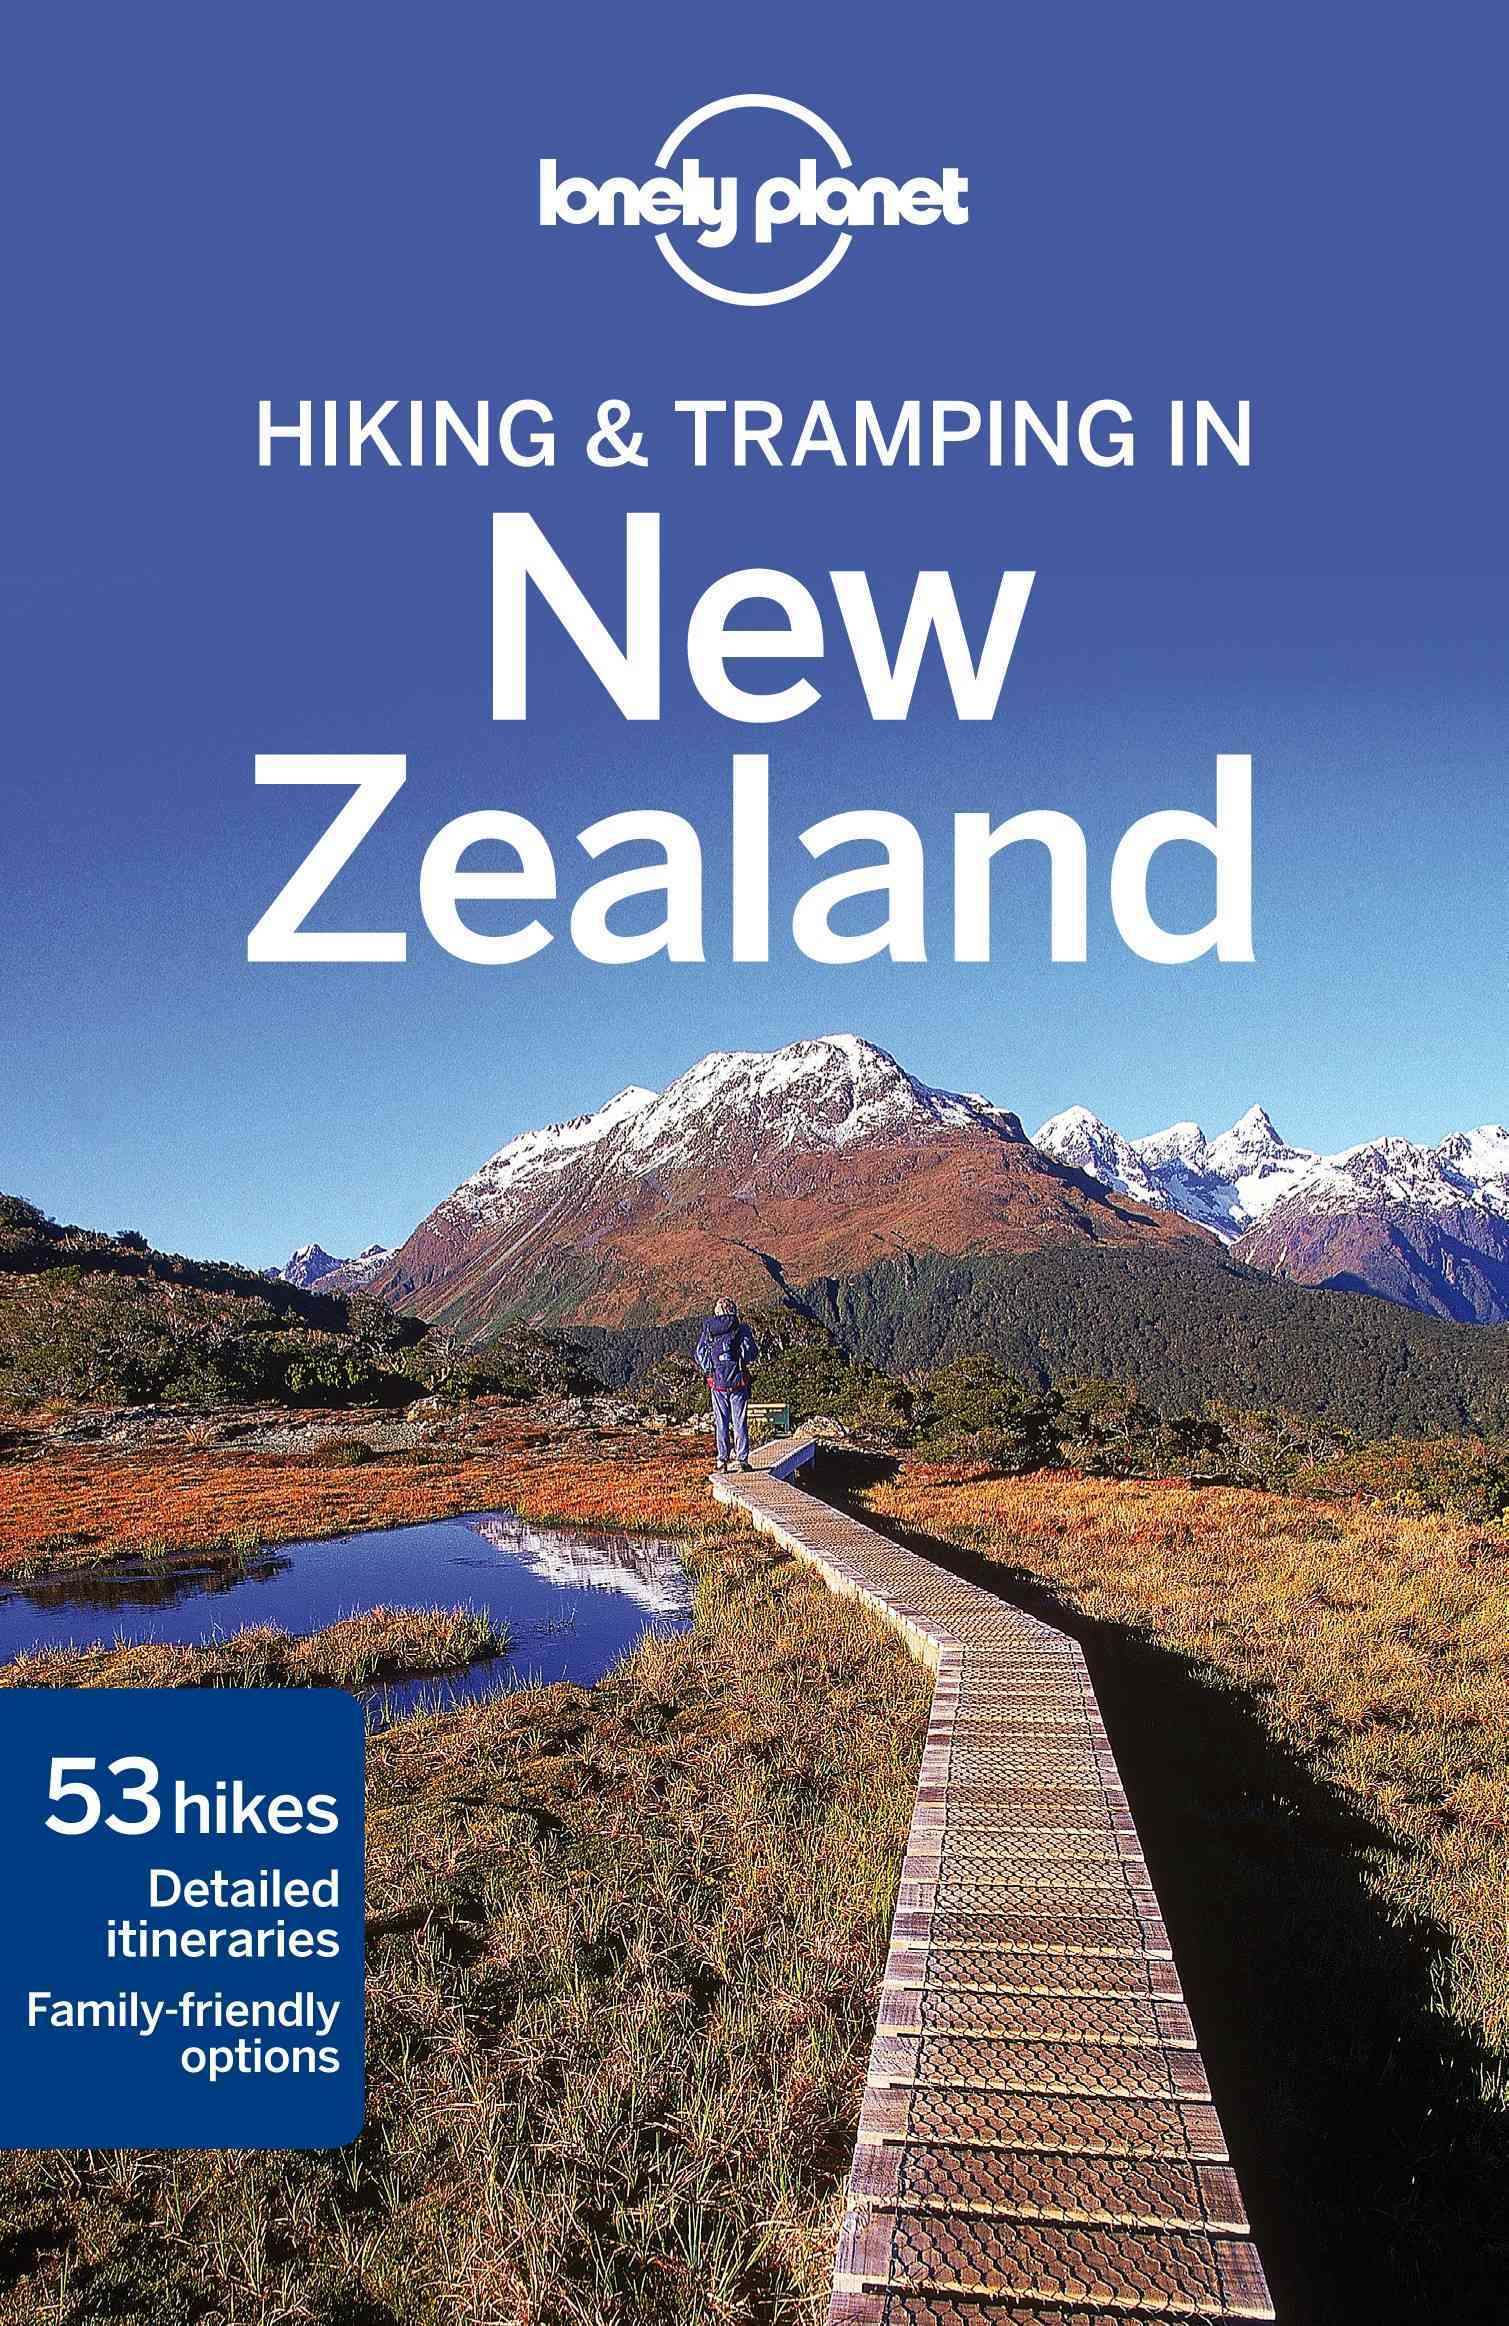 Lonely Planet Hiking & Tramping in New Zealand 7.